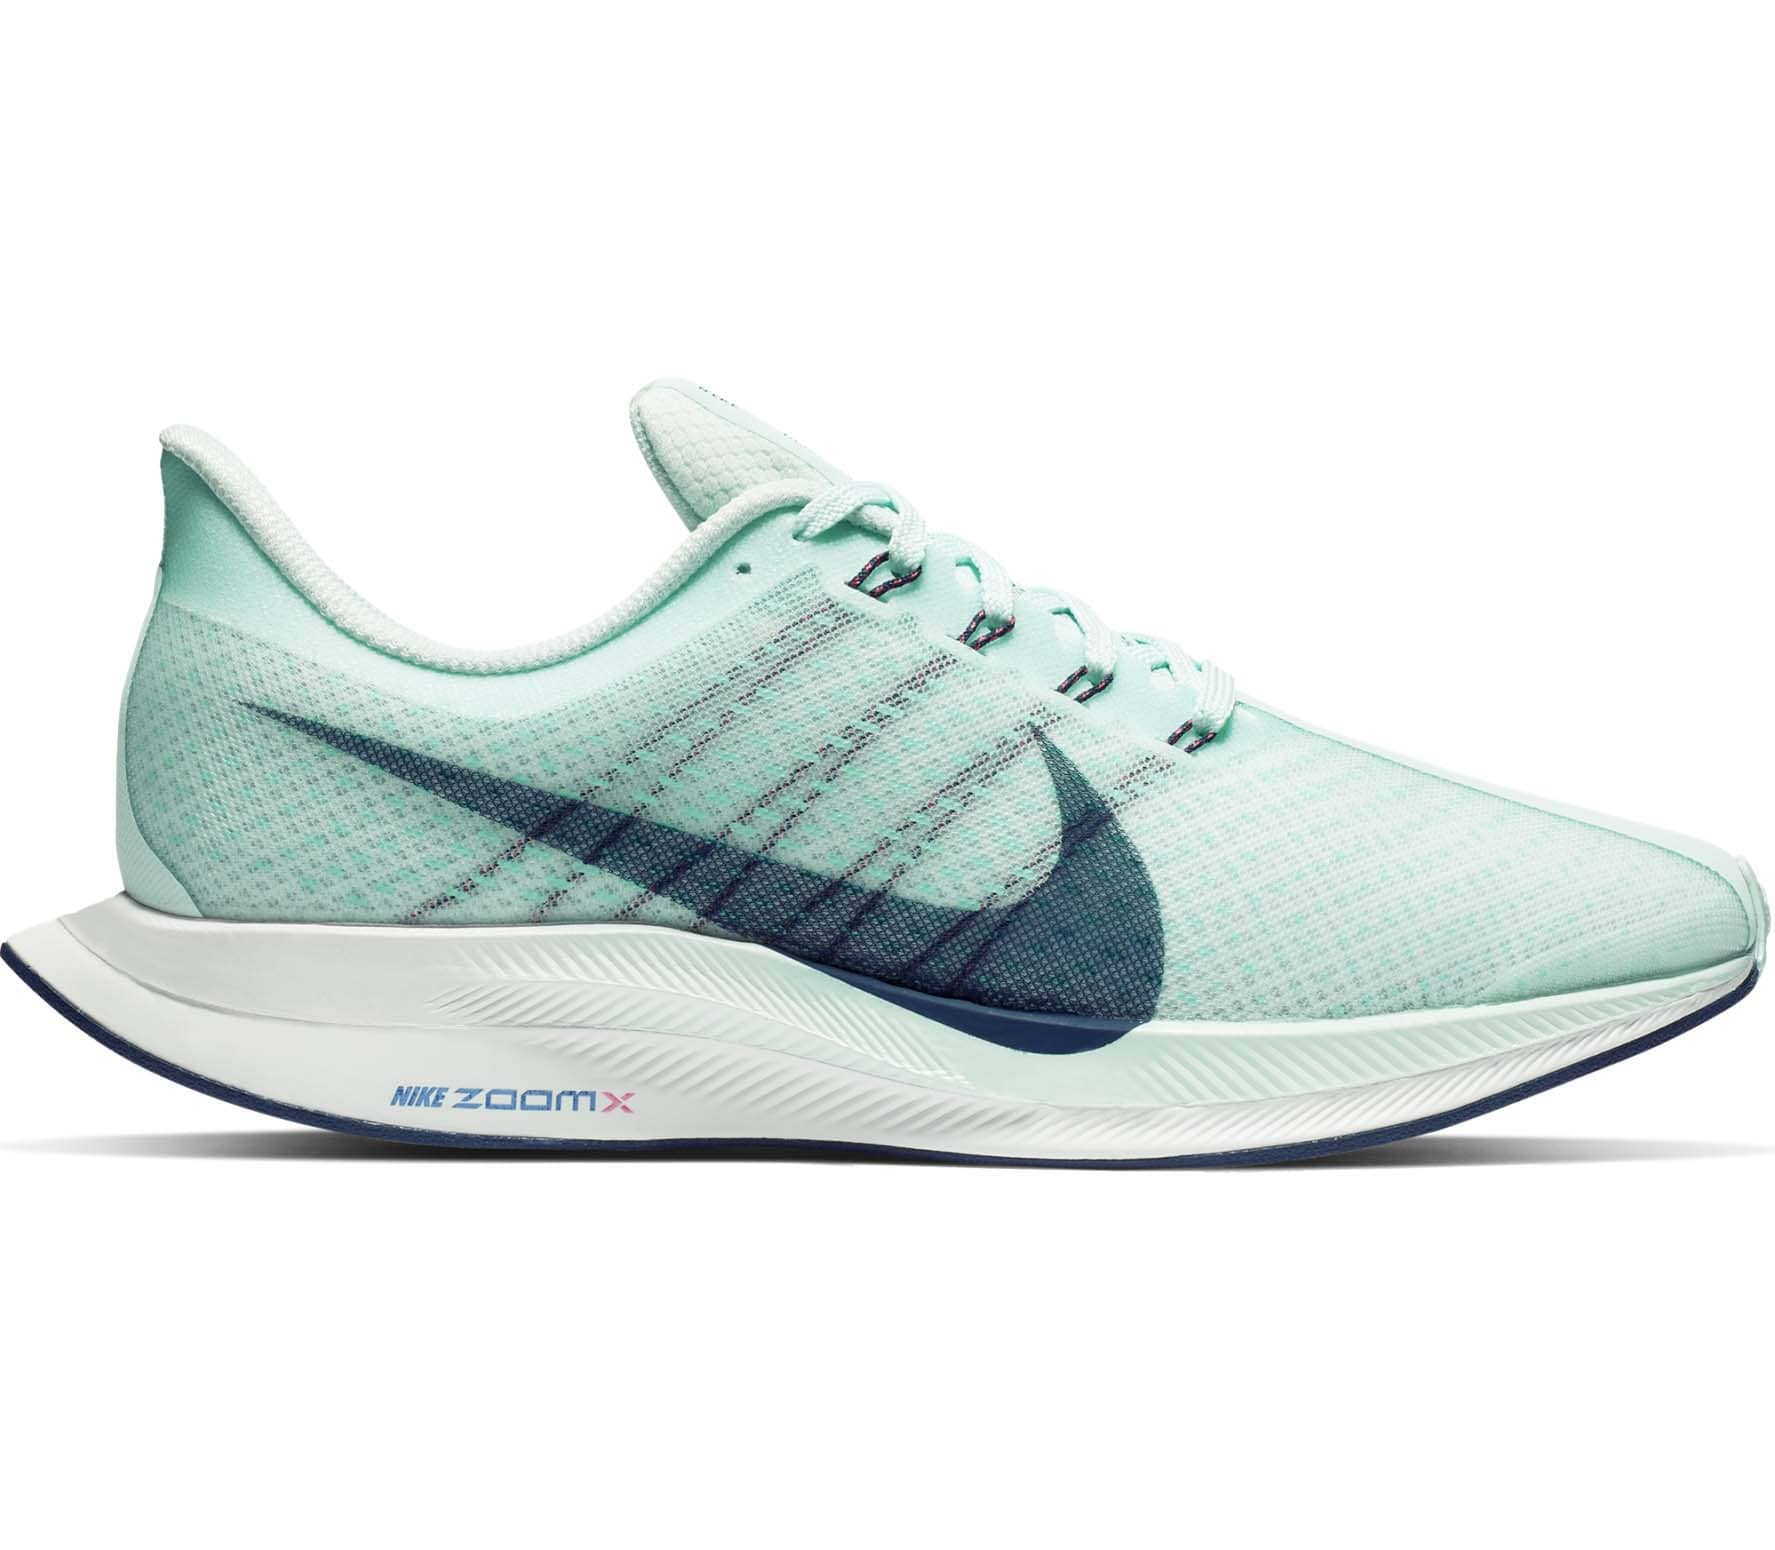 cheaper 8cb22 0f331 Nike - Zoom Pegasus Turbo women s running shoes (blue)